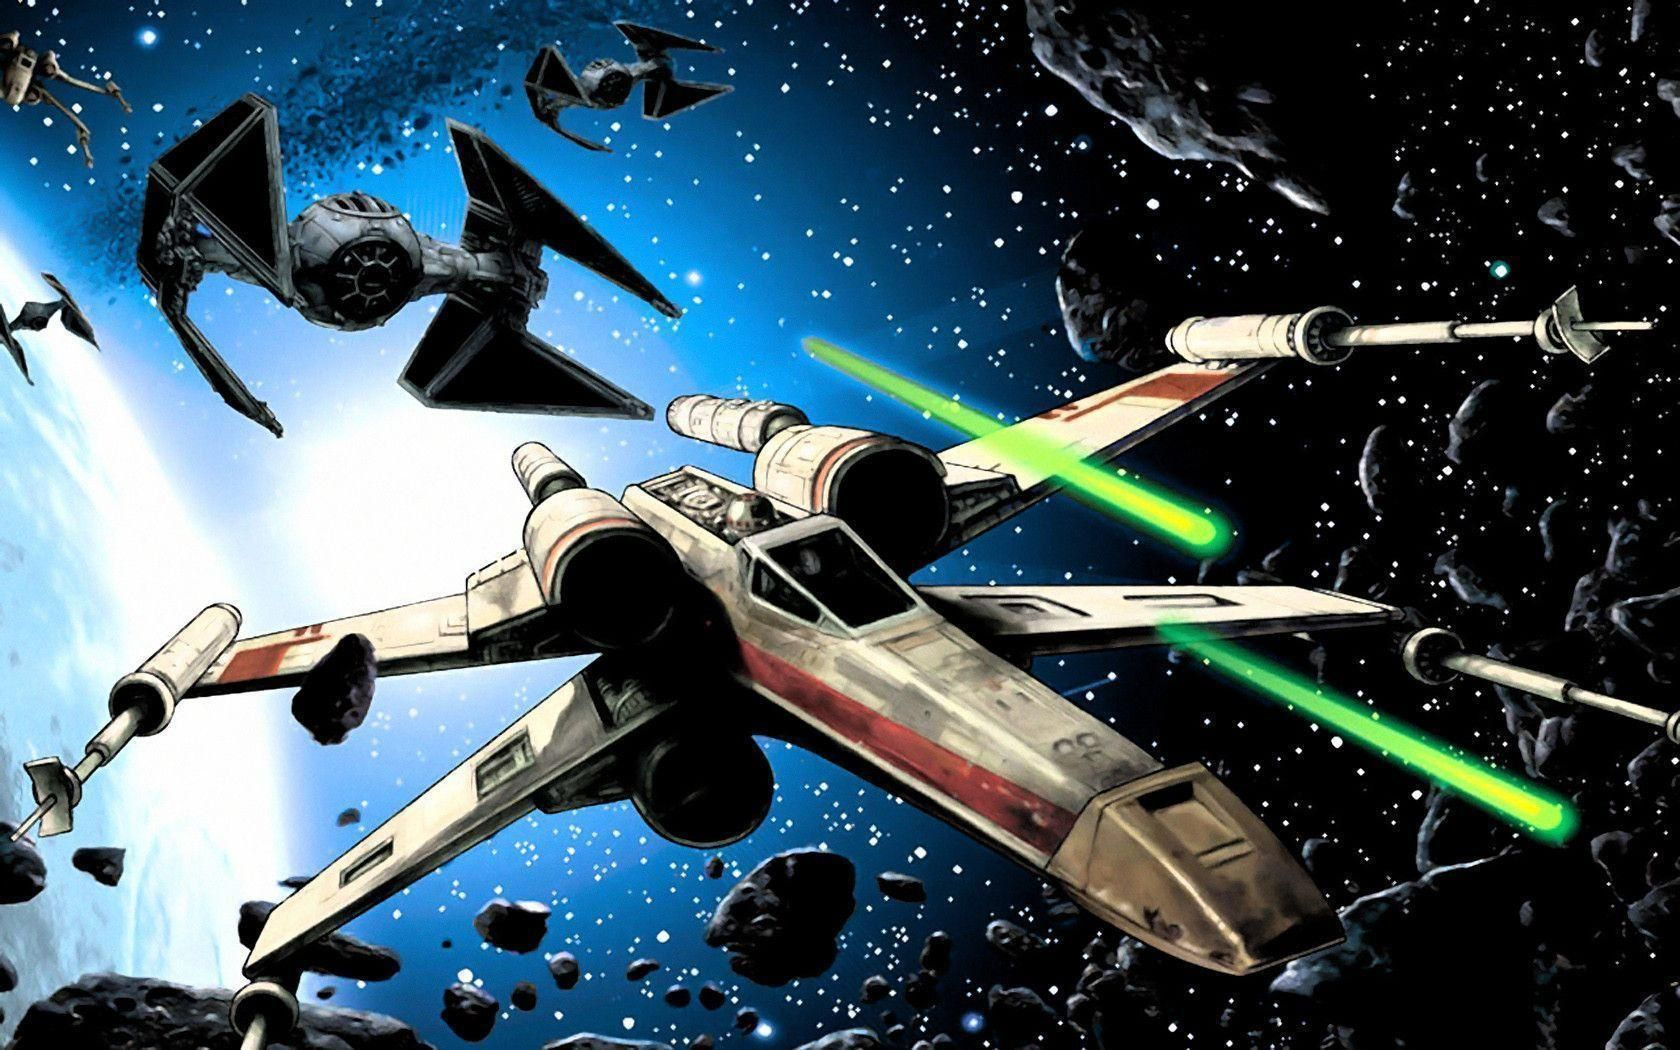 Wing Wars Star Xwing Fighter Tie Wallpapers Vs Background Fighters